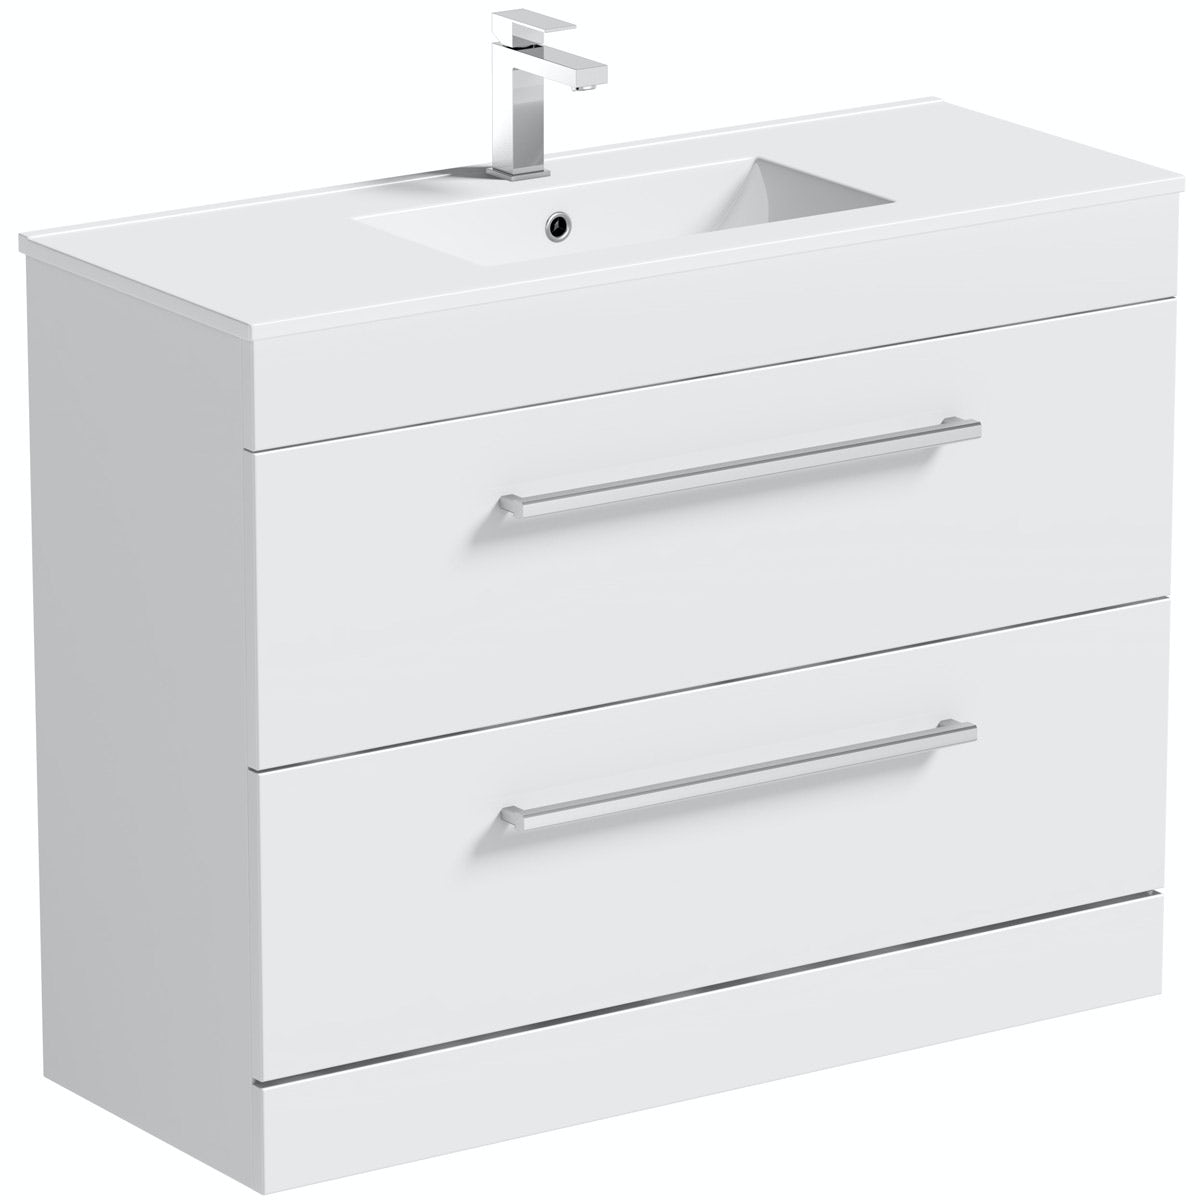 Orchard Derwent vanity drawer unit and basin 900mm